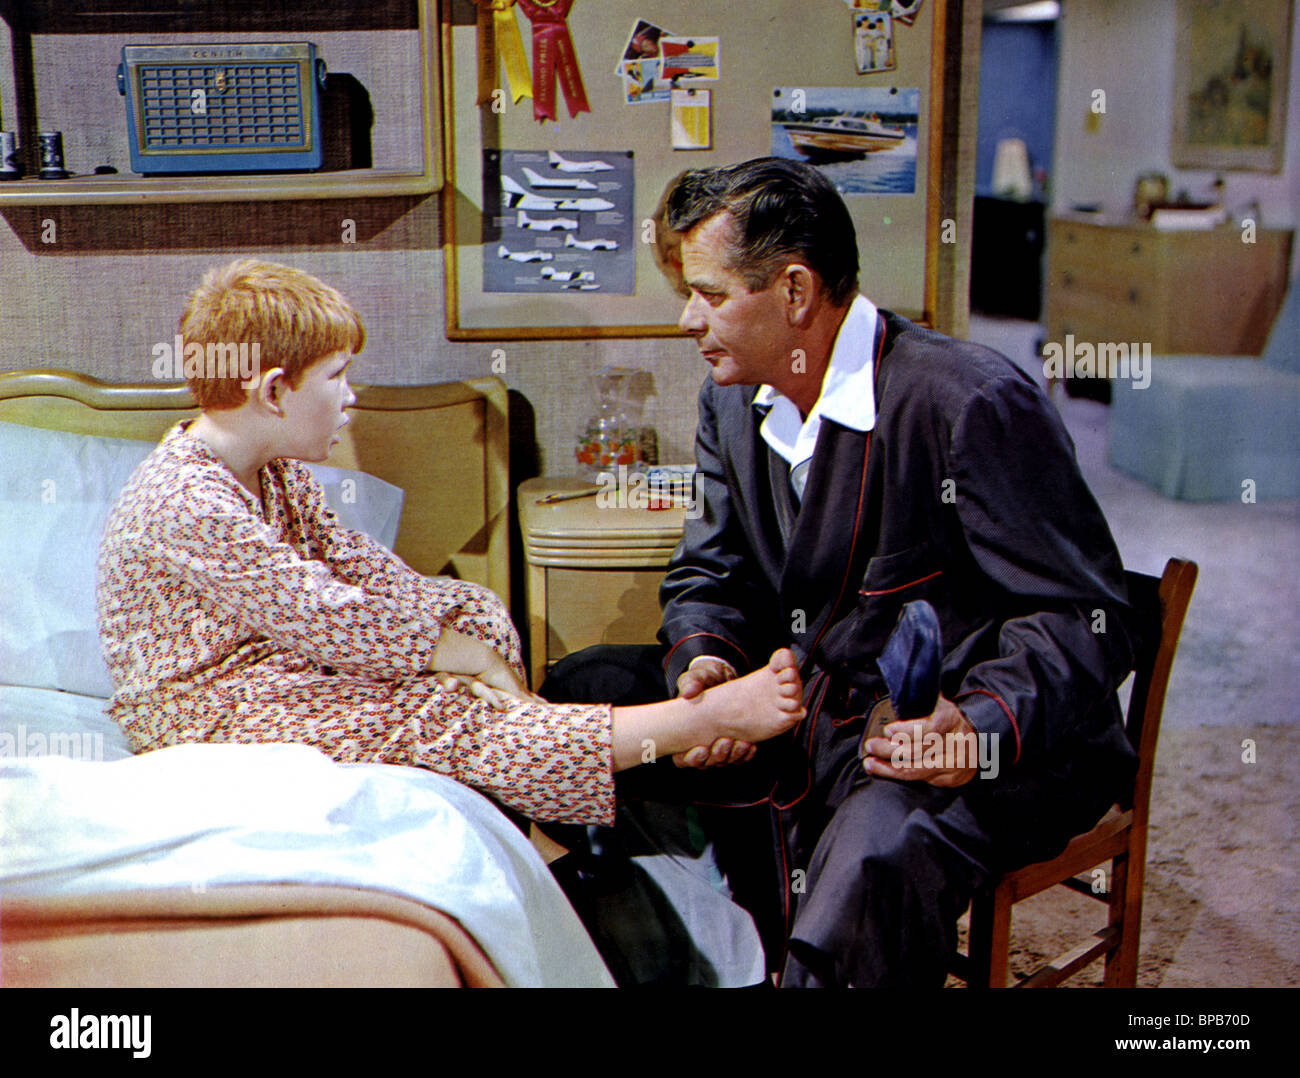 RON HOWARD & GLENN FORD THE COURTSHIP OF EDDIE'S FATHER (1963) - Stock Image